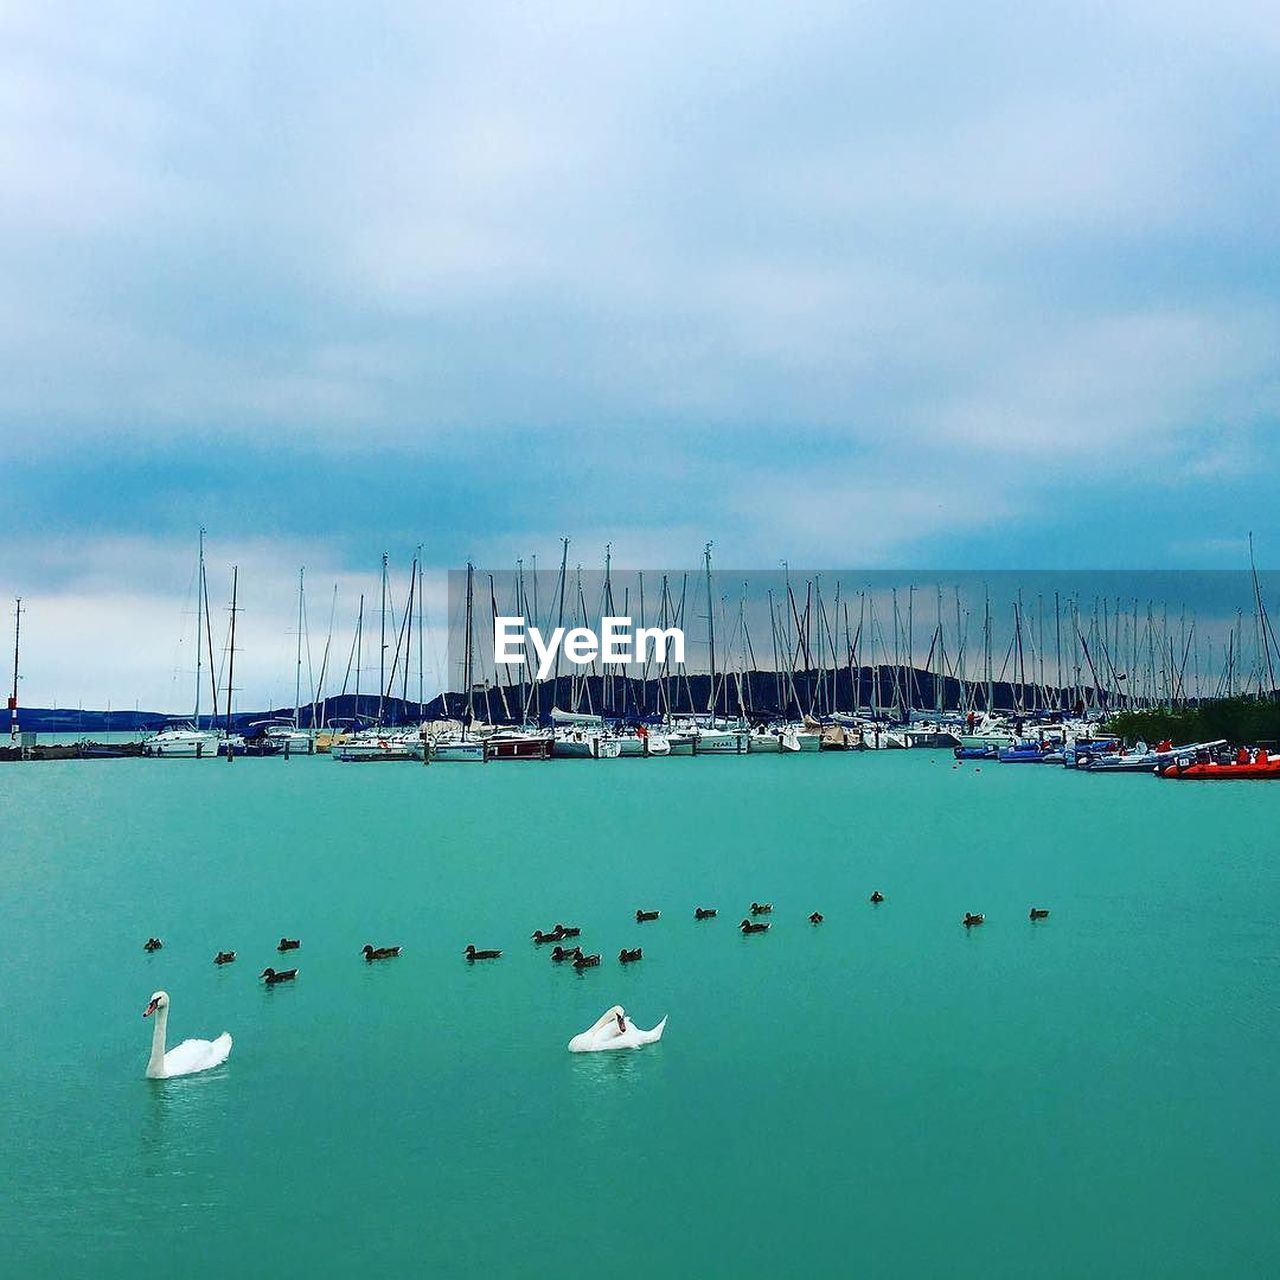 water, large group of animals, animal themes, nautical vessel, animals in the wild, sky, bird, sea, day, transportation, cloud - sky, no people, outdoors, moored, animal wildlife, nature, harbor, sailboat, flying, yacht, scenics, beauty in nature, sailing ship